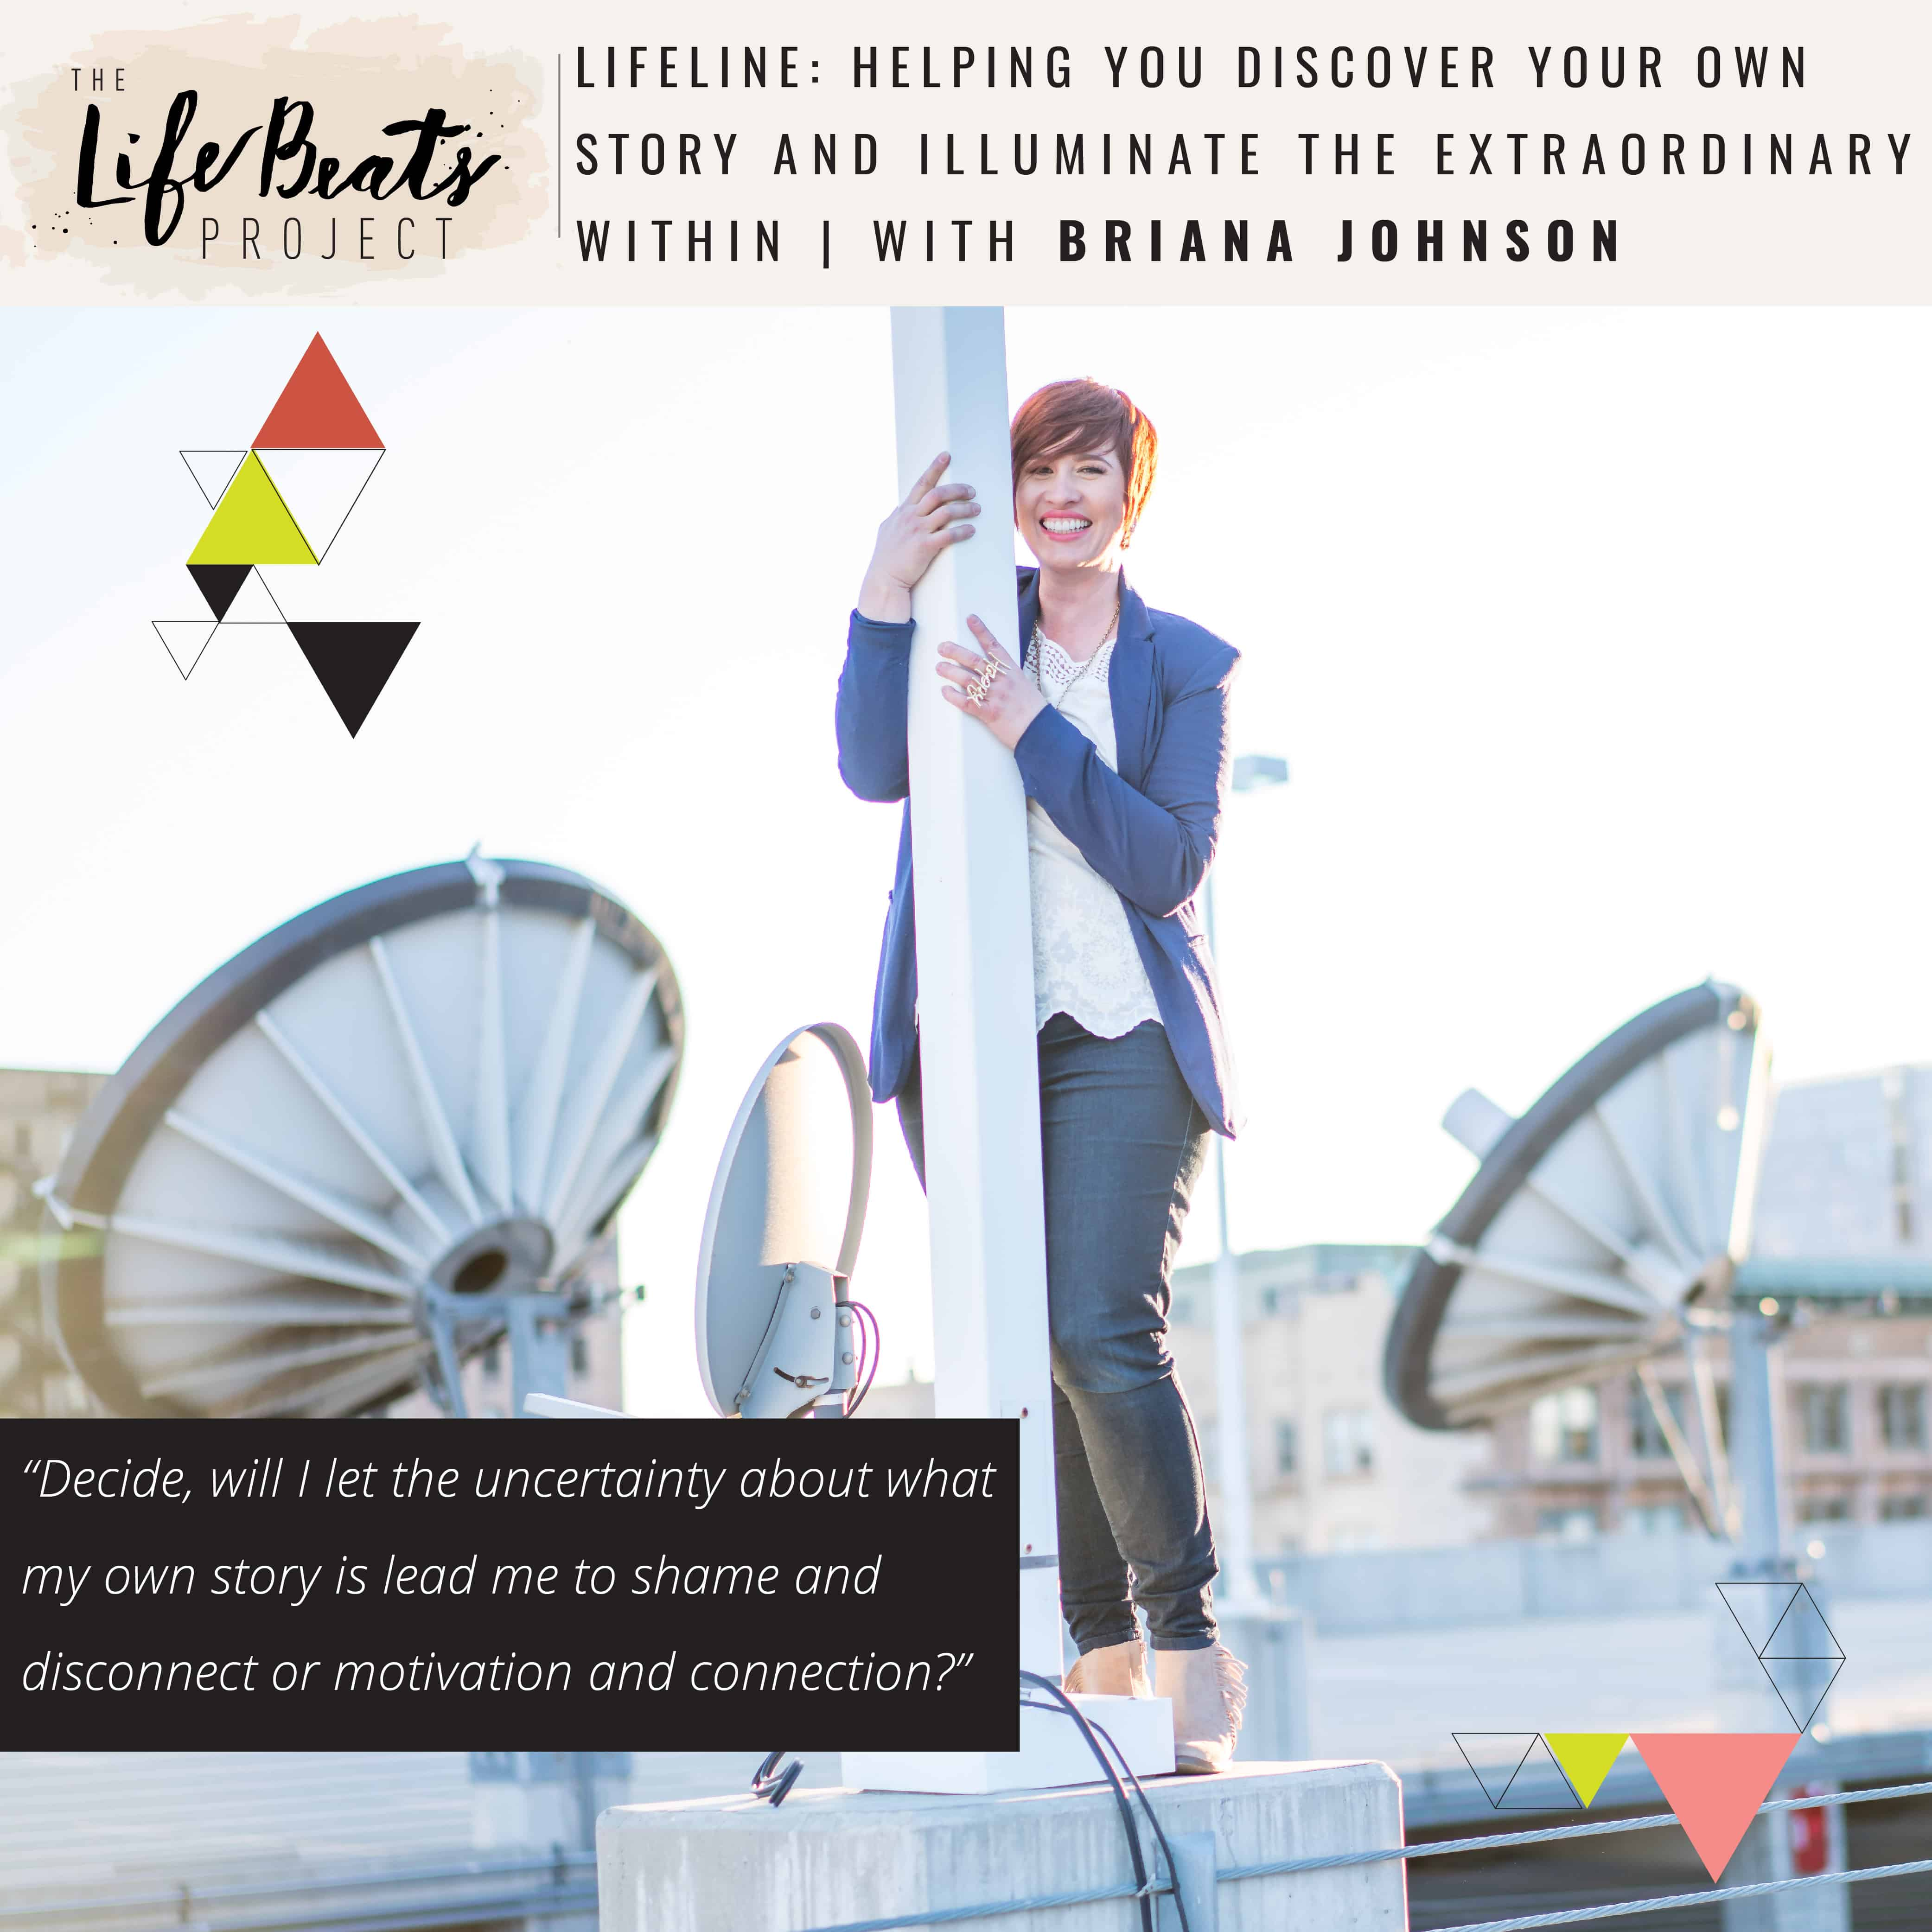 discovering your story community podcast light darkness shame hope The LifeBeats Project